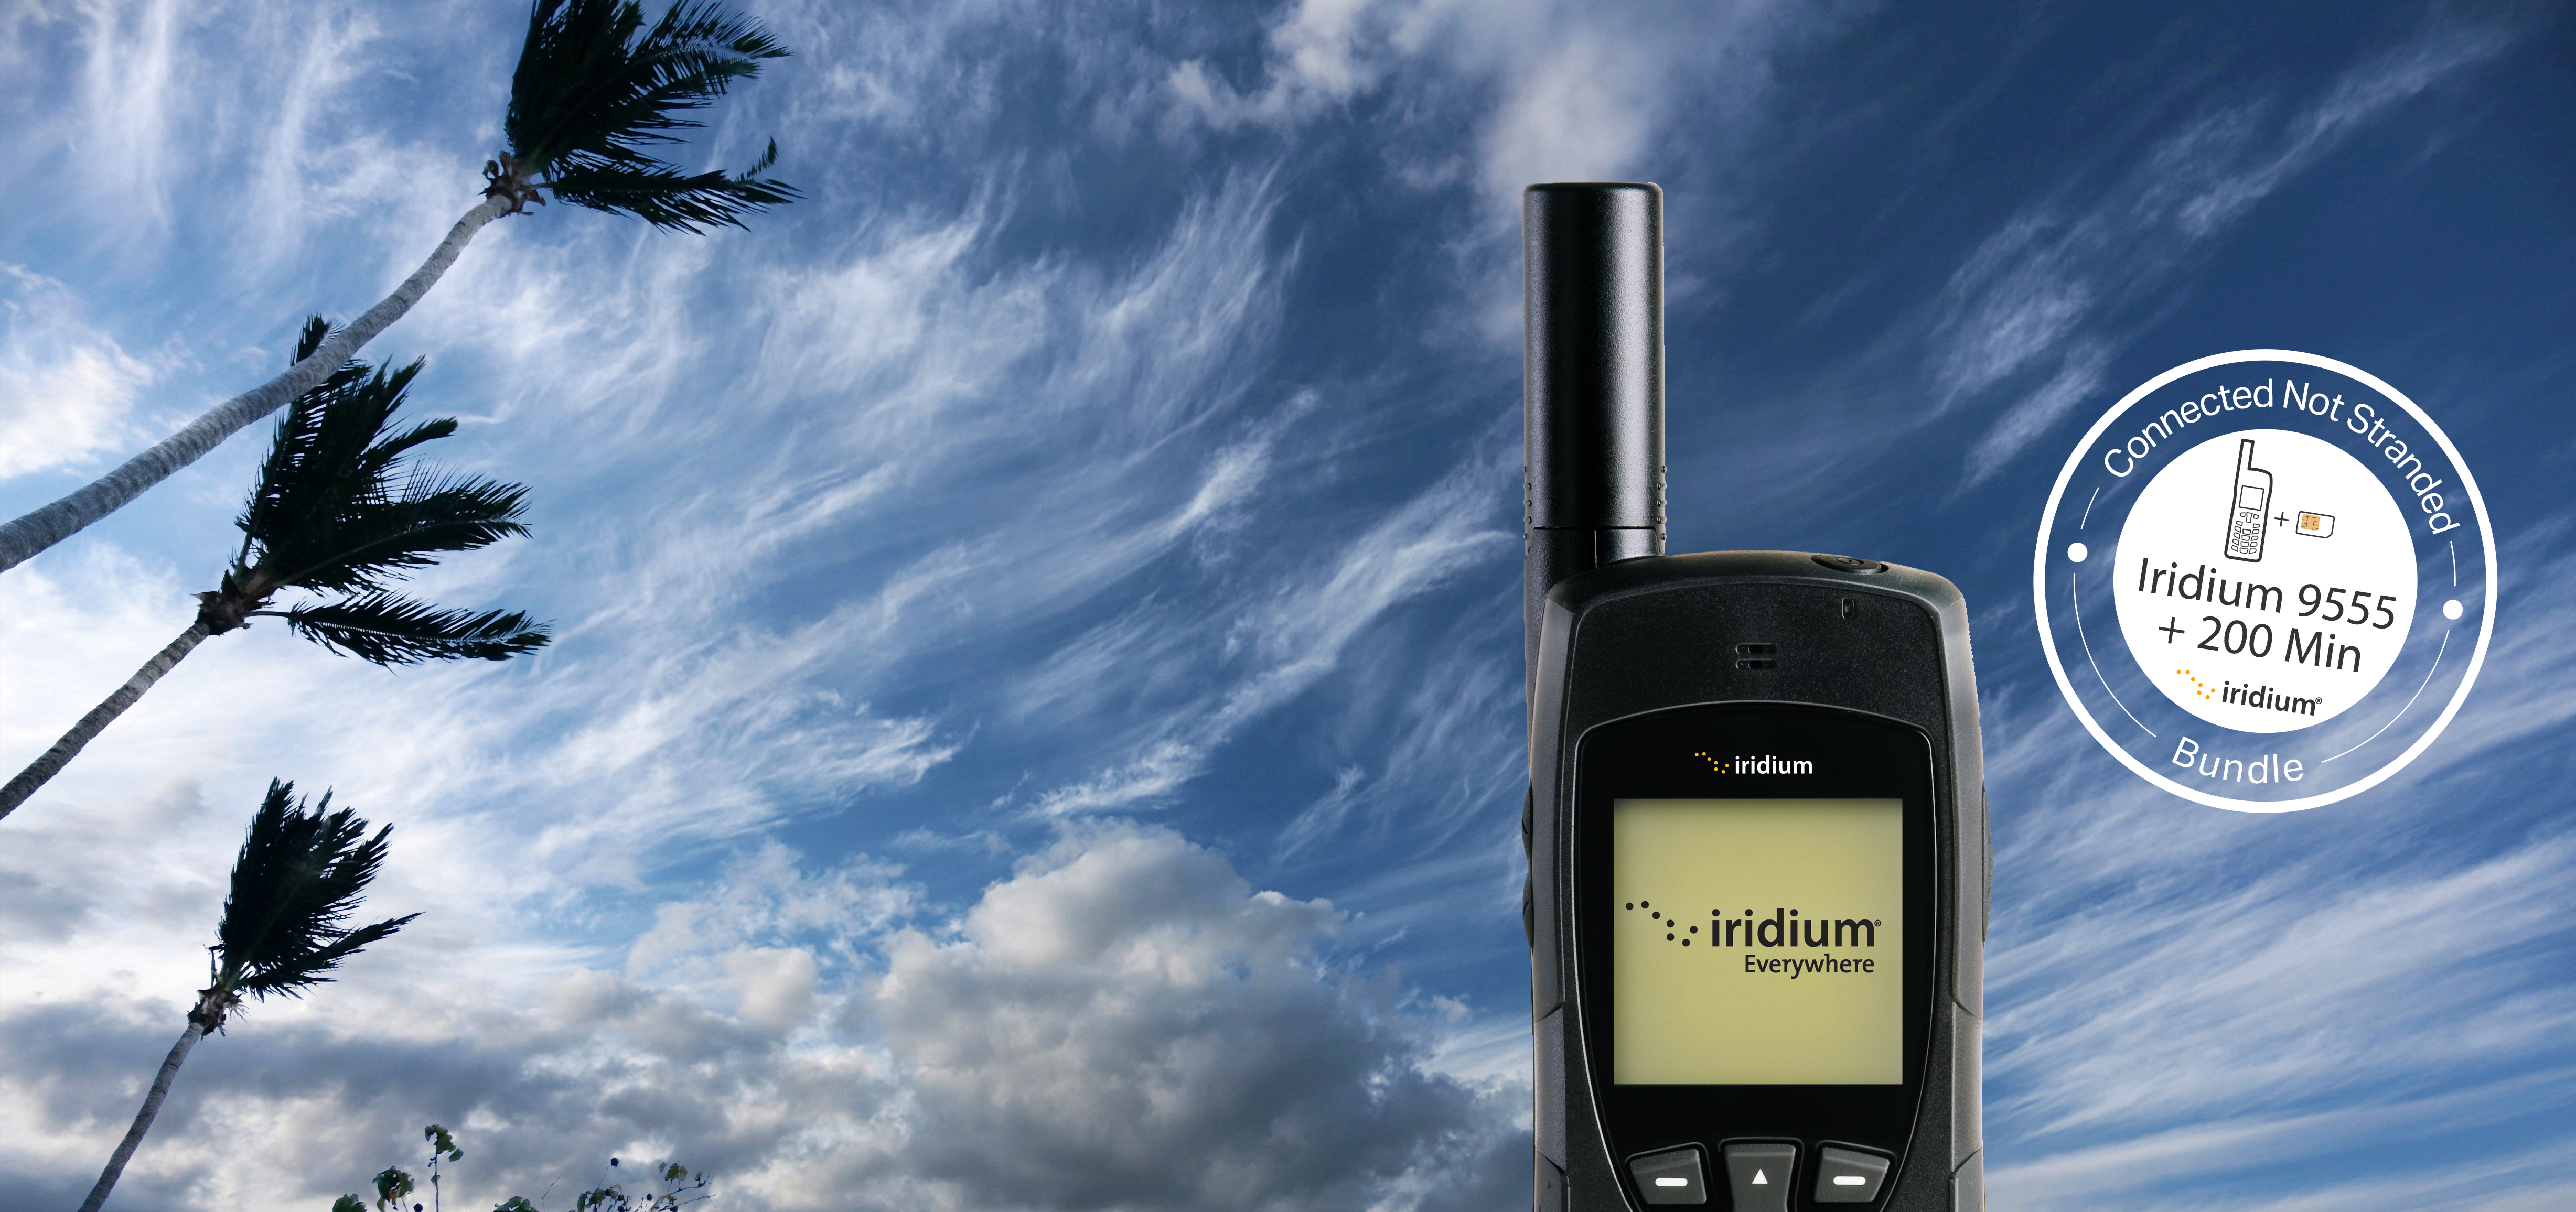 Iridium Connected Not Stranded Disaster Preparedness Campaign